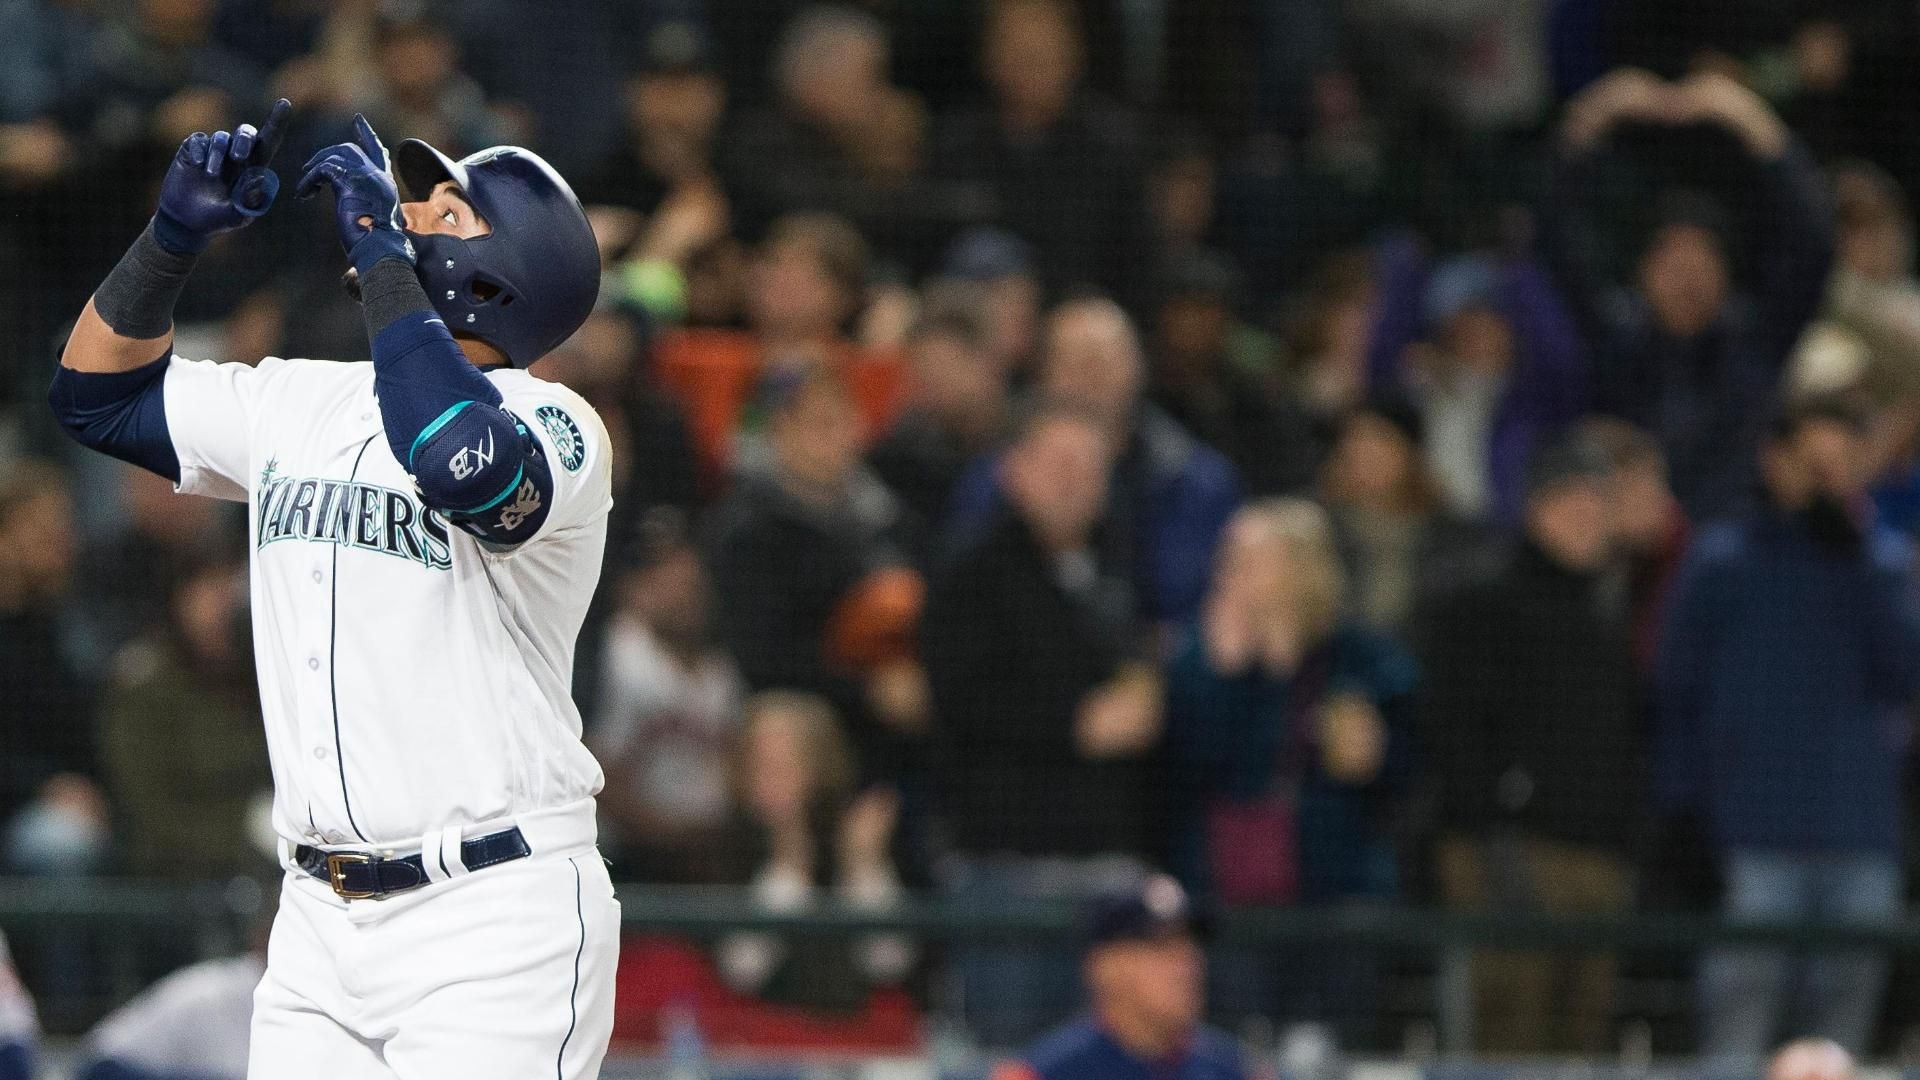 Mariners outlast the Astros 2-1